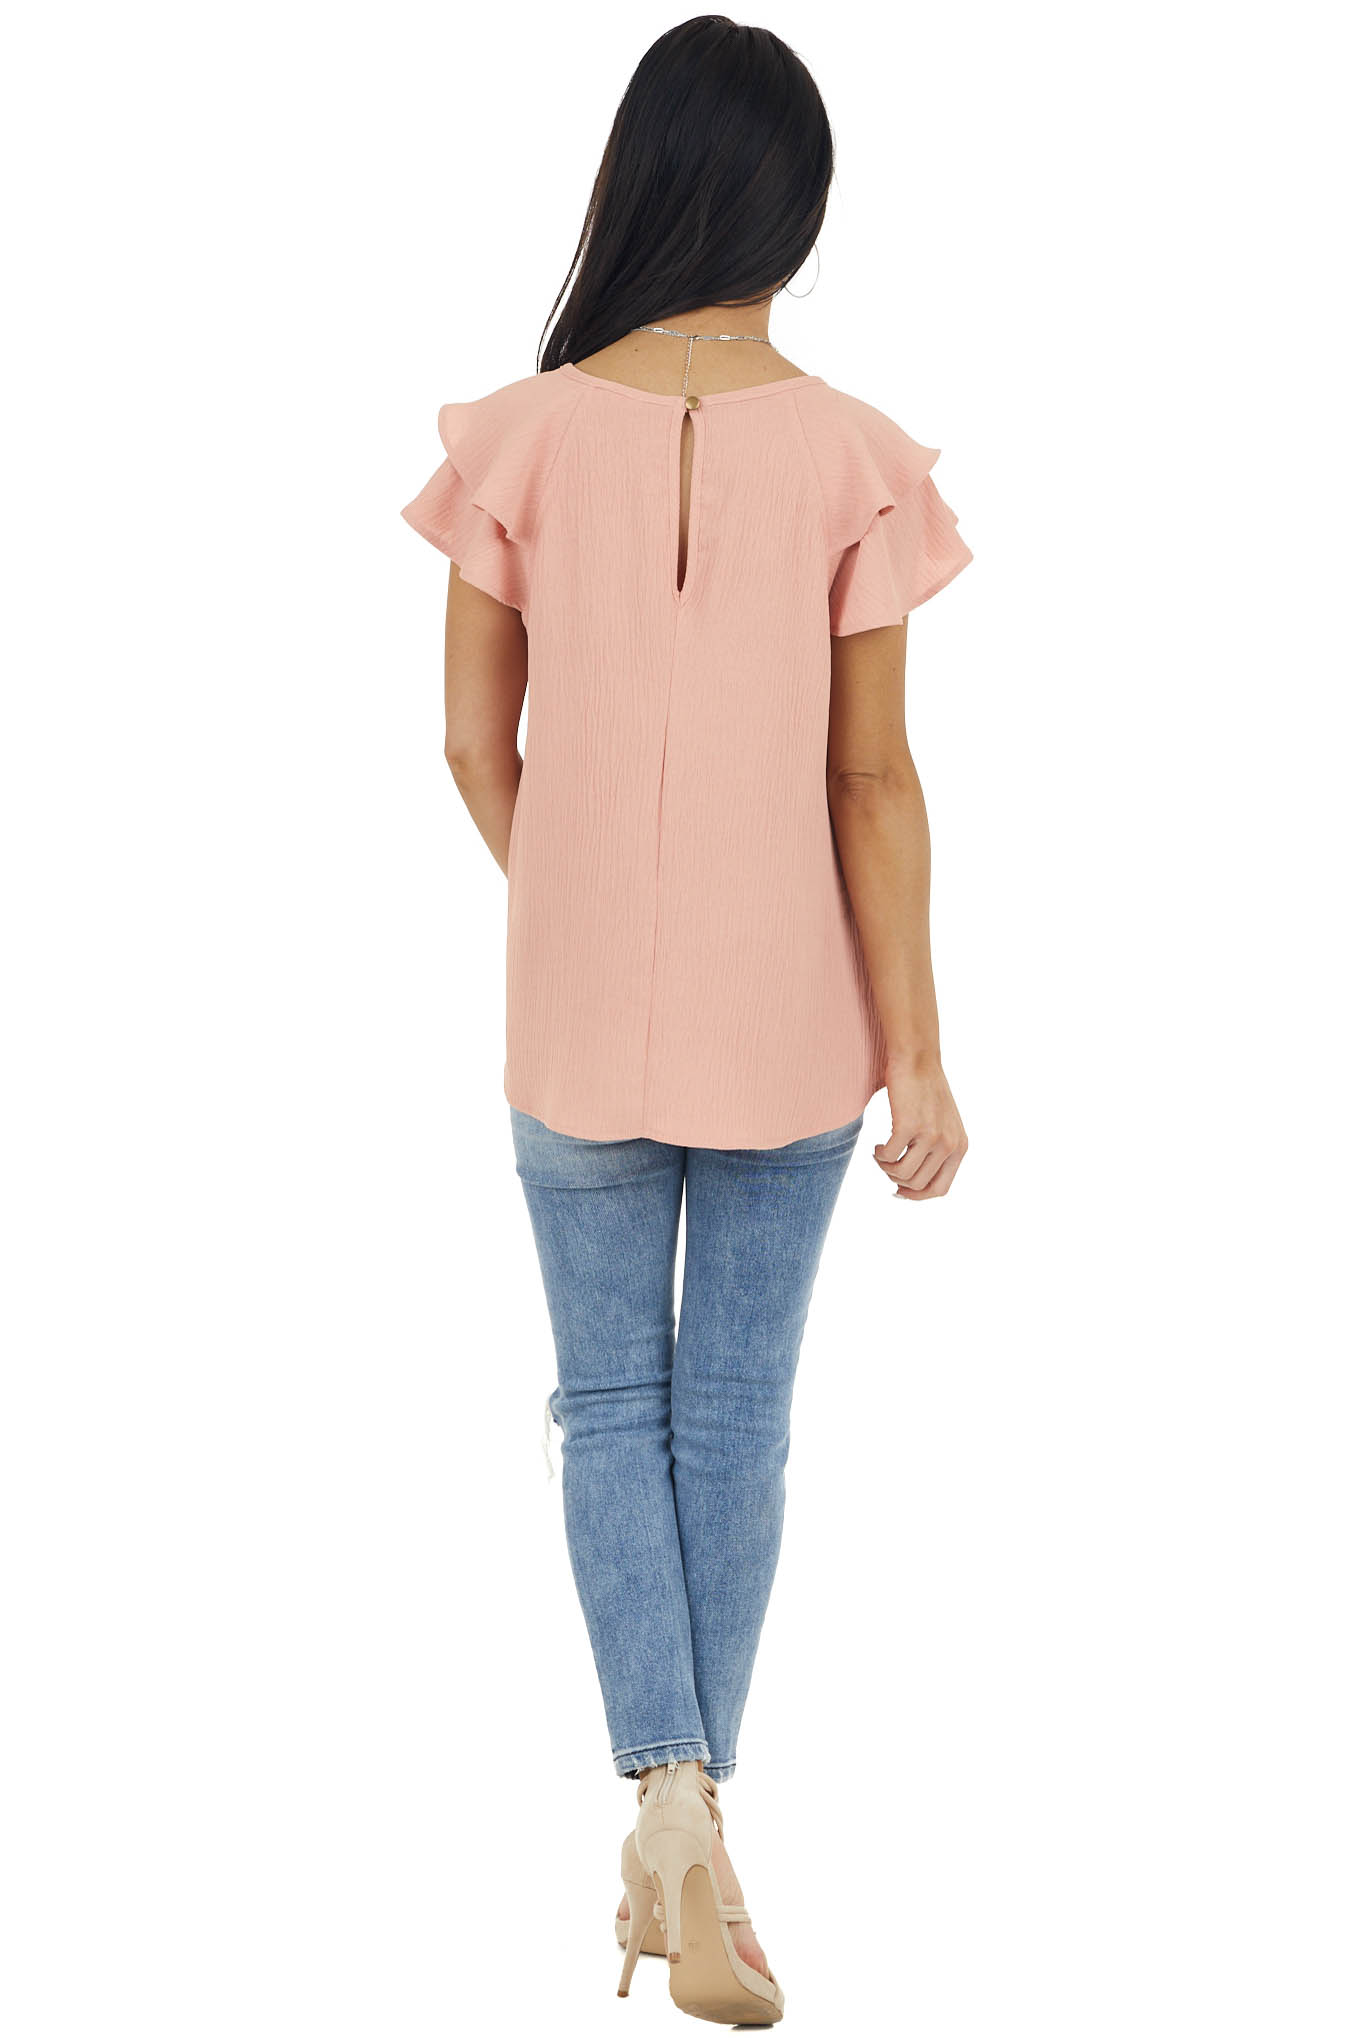 Melon Textured Woven Top with Short Layered Flutter Sleeves